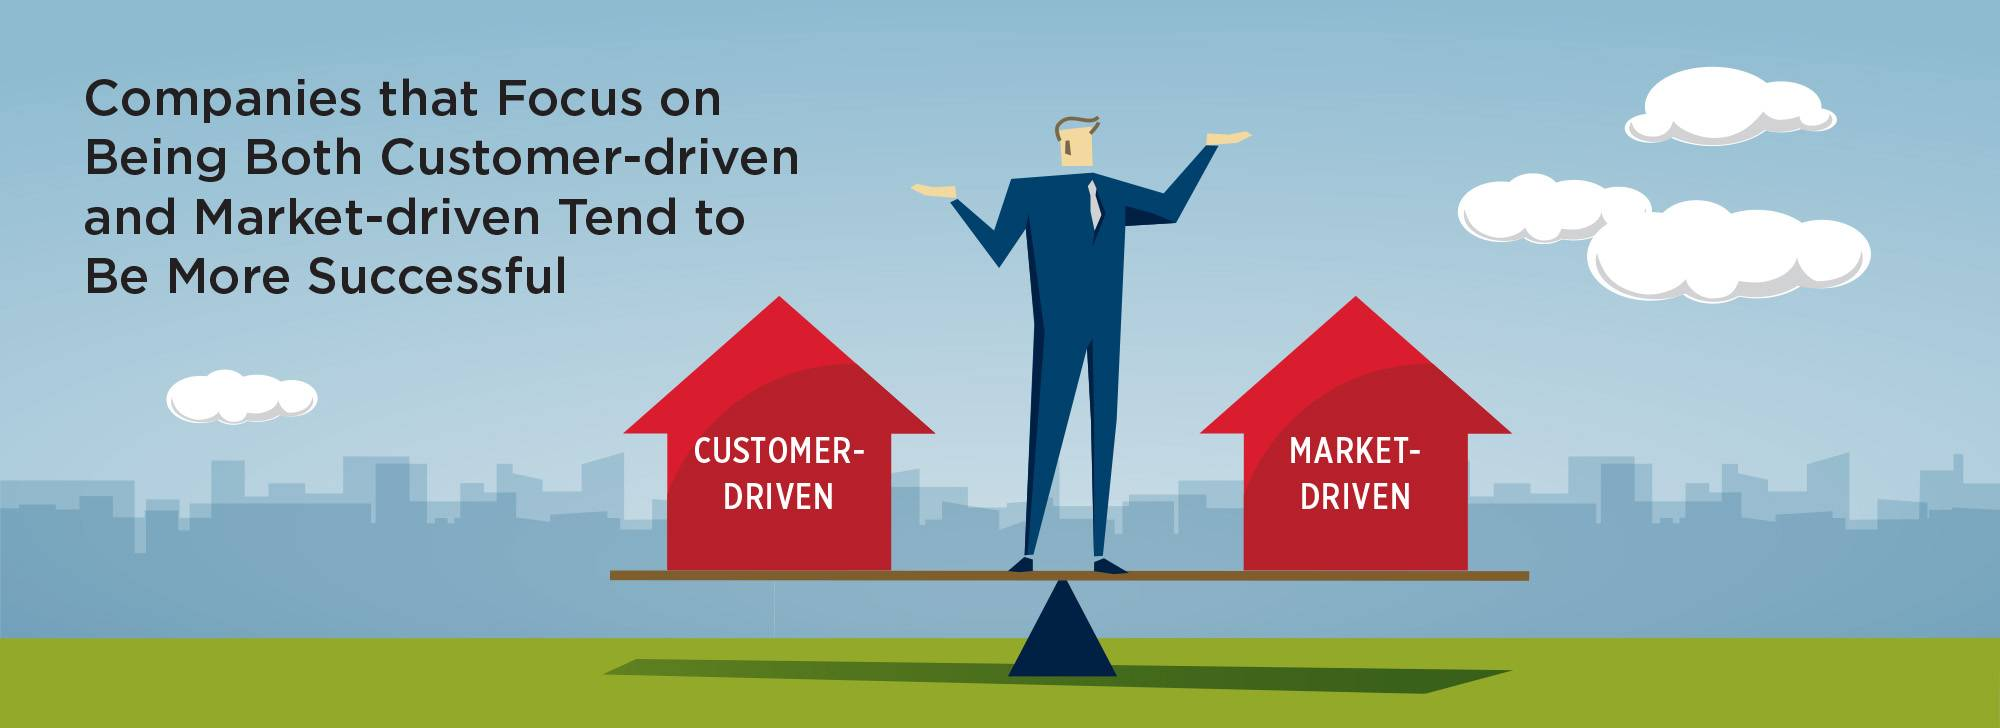 Companies that focus on being both customer-driven and market-driven tend to be more successful